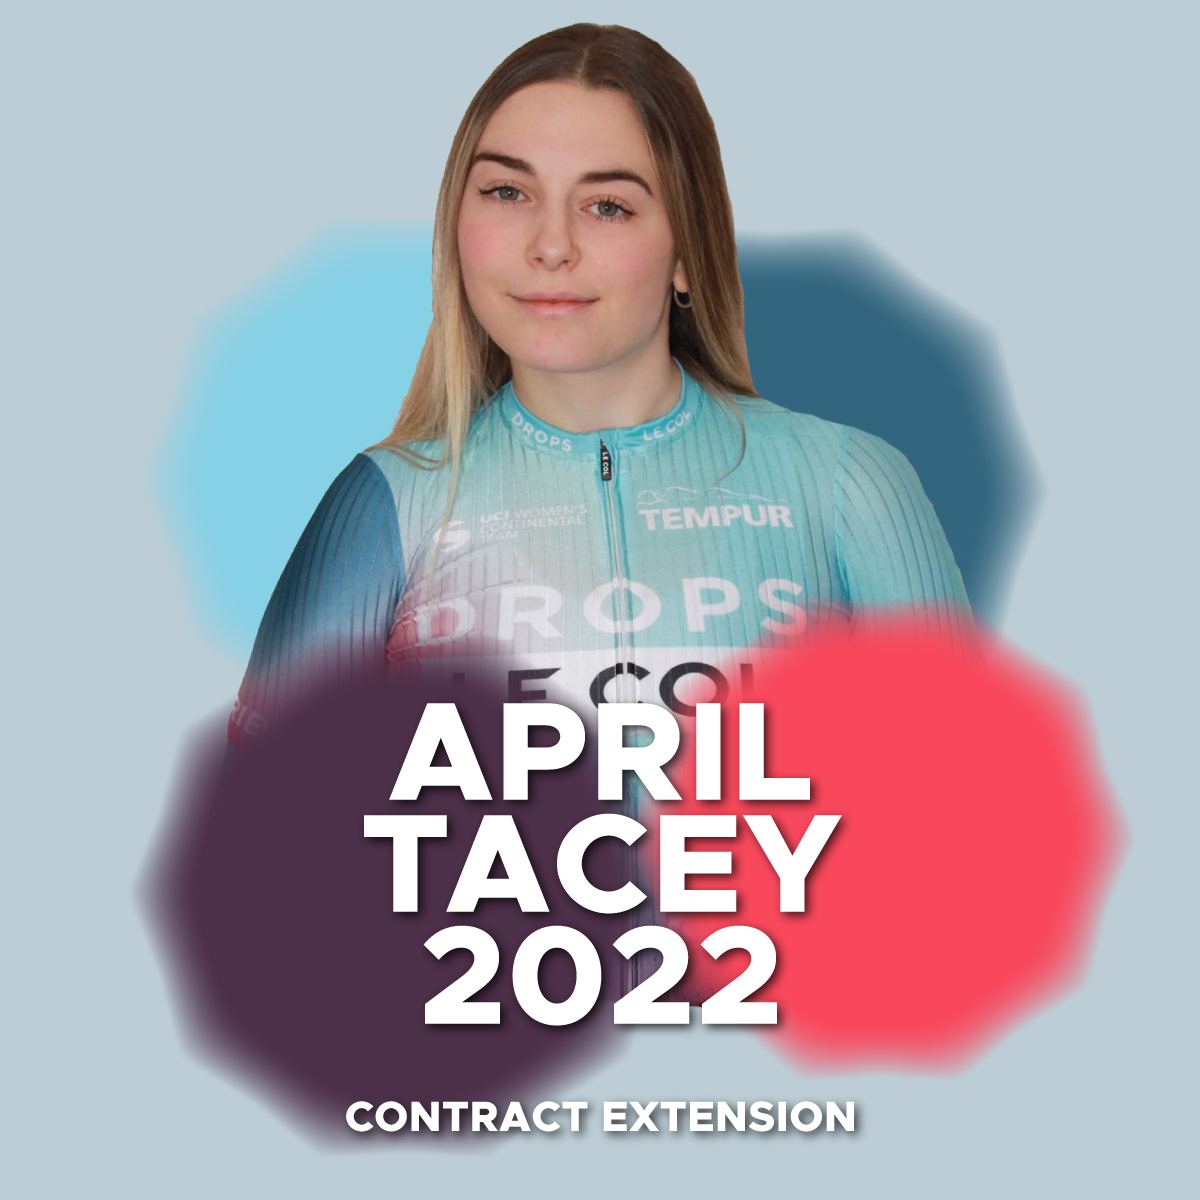 April Tacey extends her contract